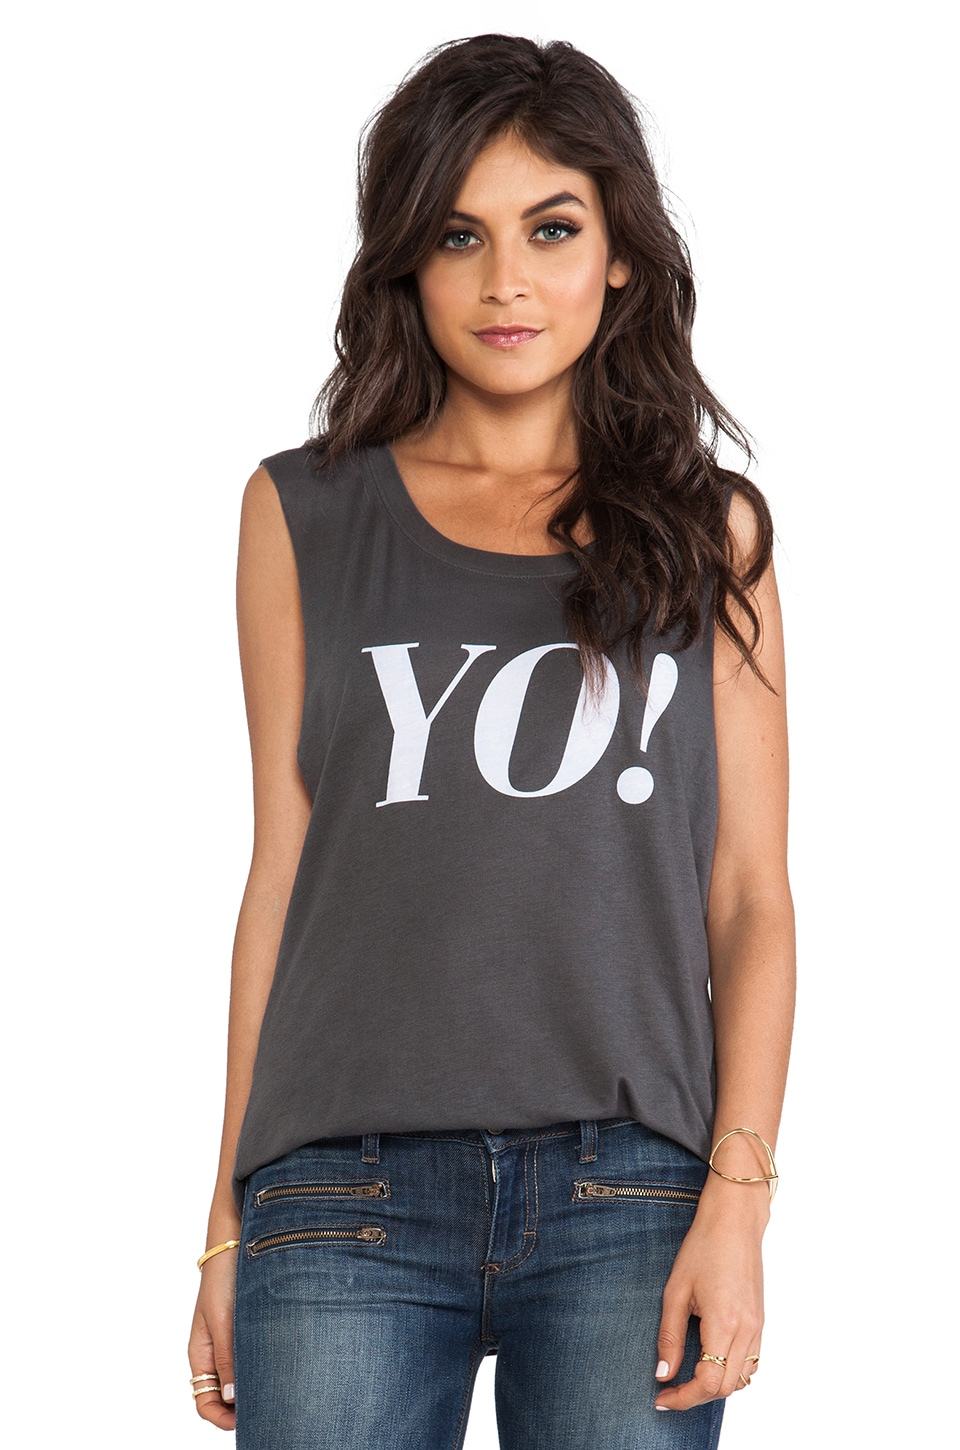 All Things Fabulous Yo! Muscle Tee in Black